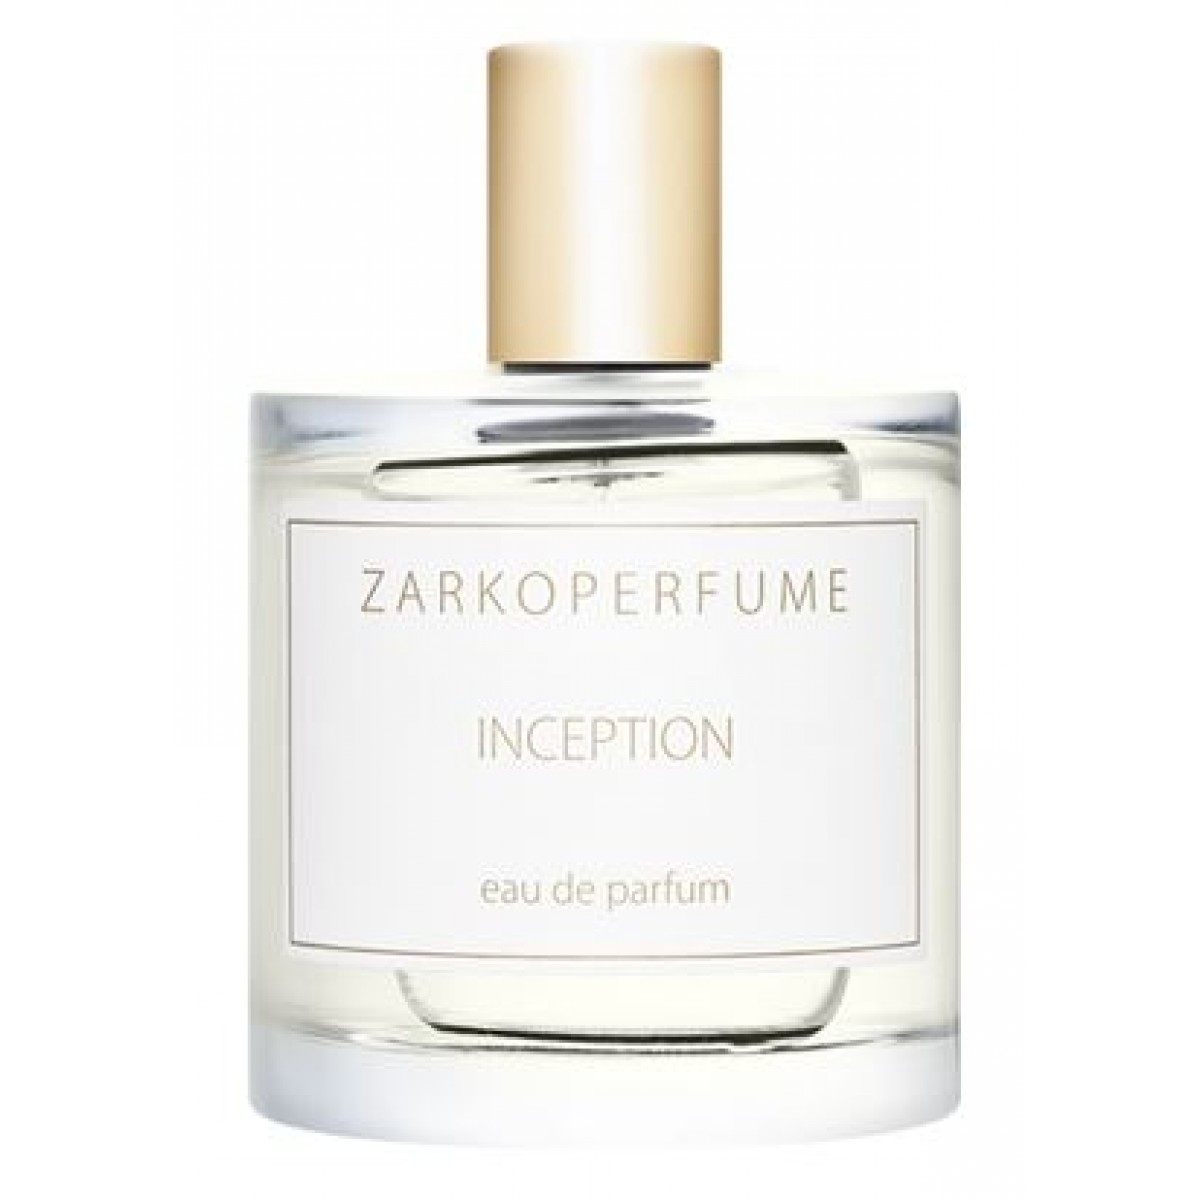 ZARKOPERFUME INCEPTION Eau de Parfum-30